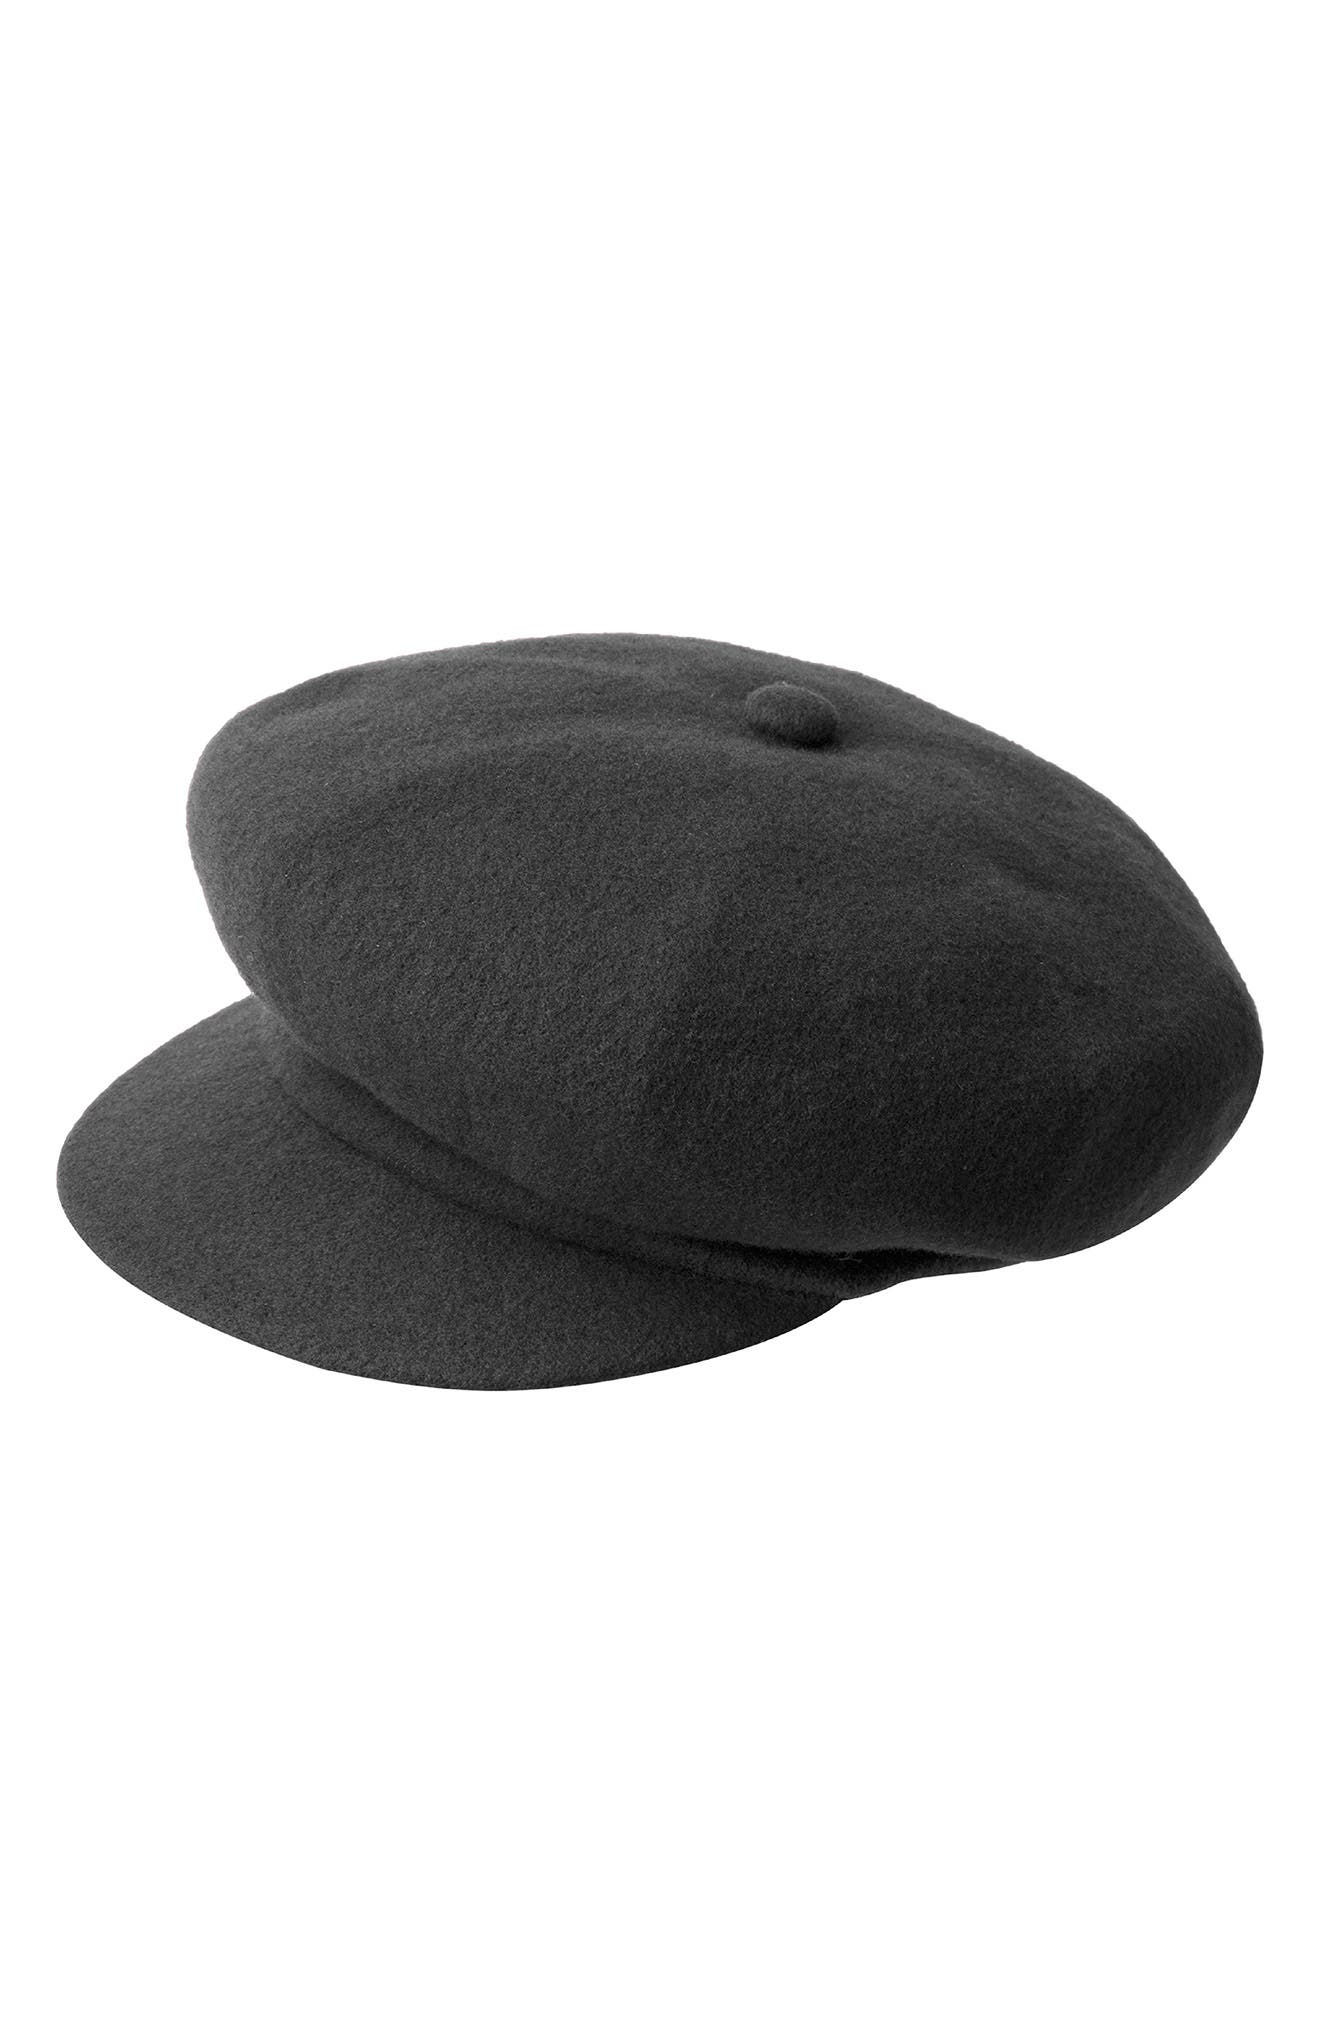 A classic wool blend elevates an oversized newsboy cap with iconic style. Style Name: Kangol Spitfire Wool Blend Newsboy Cap. Style Number: 6099970. Available in stores.